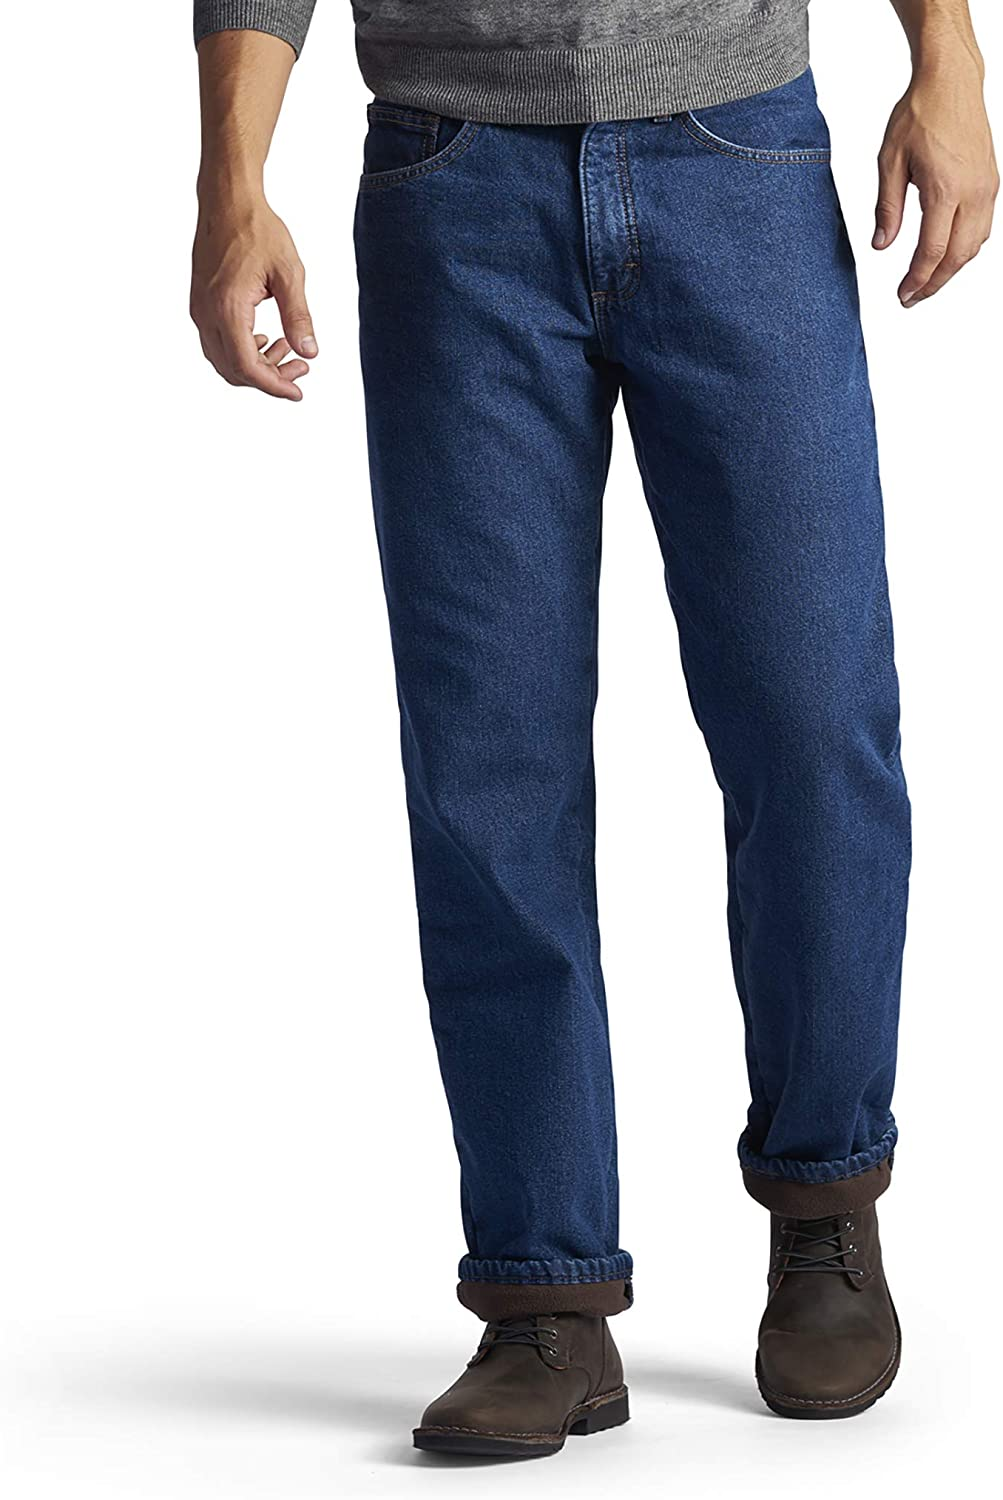 Lee Men's Fleece and Flannel Lined Relaxed-Fit Straight-Leg Jeans